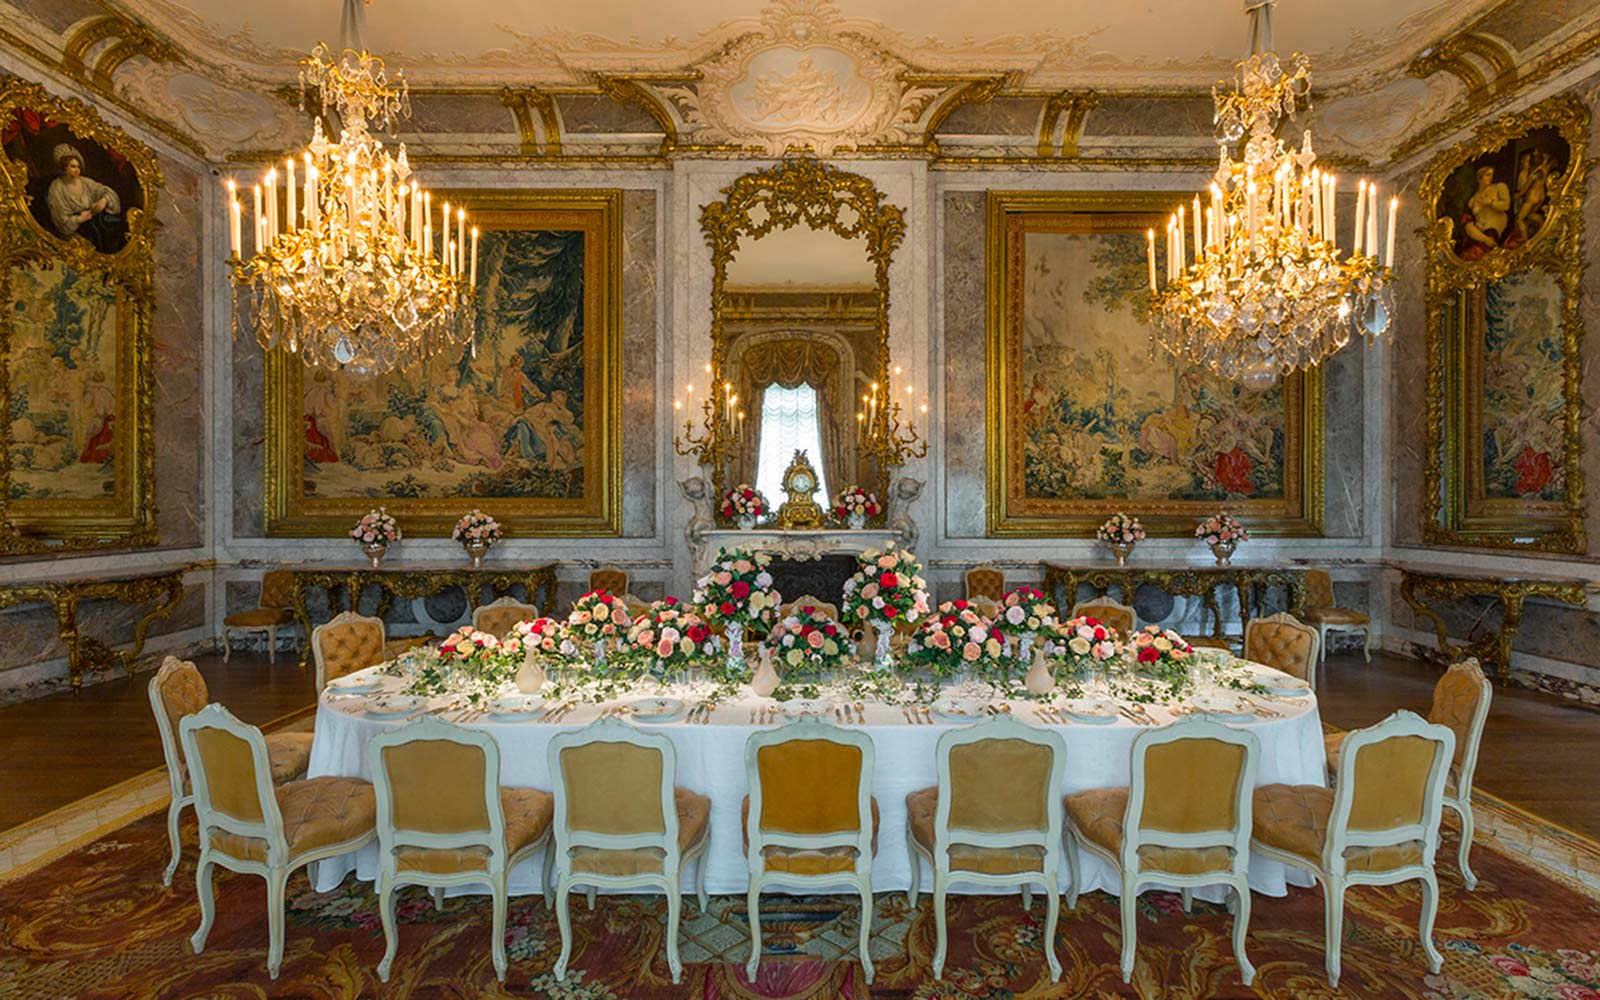 Dining-Room-Waddesdon-Manor.-Photo-Chris-Lacey-c-National-Trust-Waddesdon-Manor.jpg